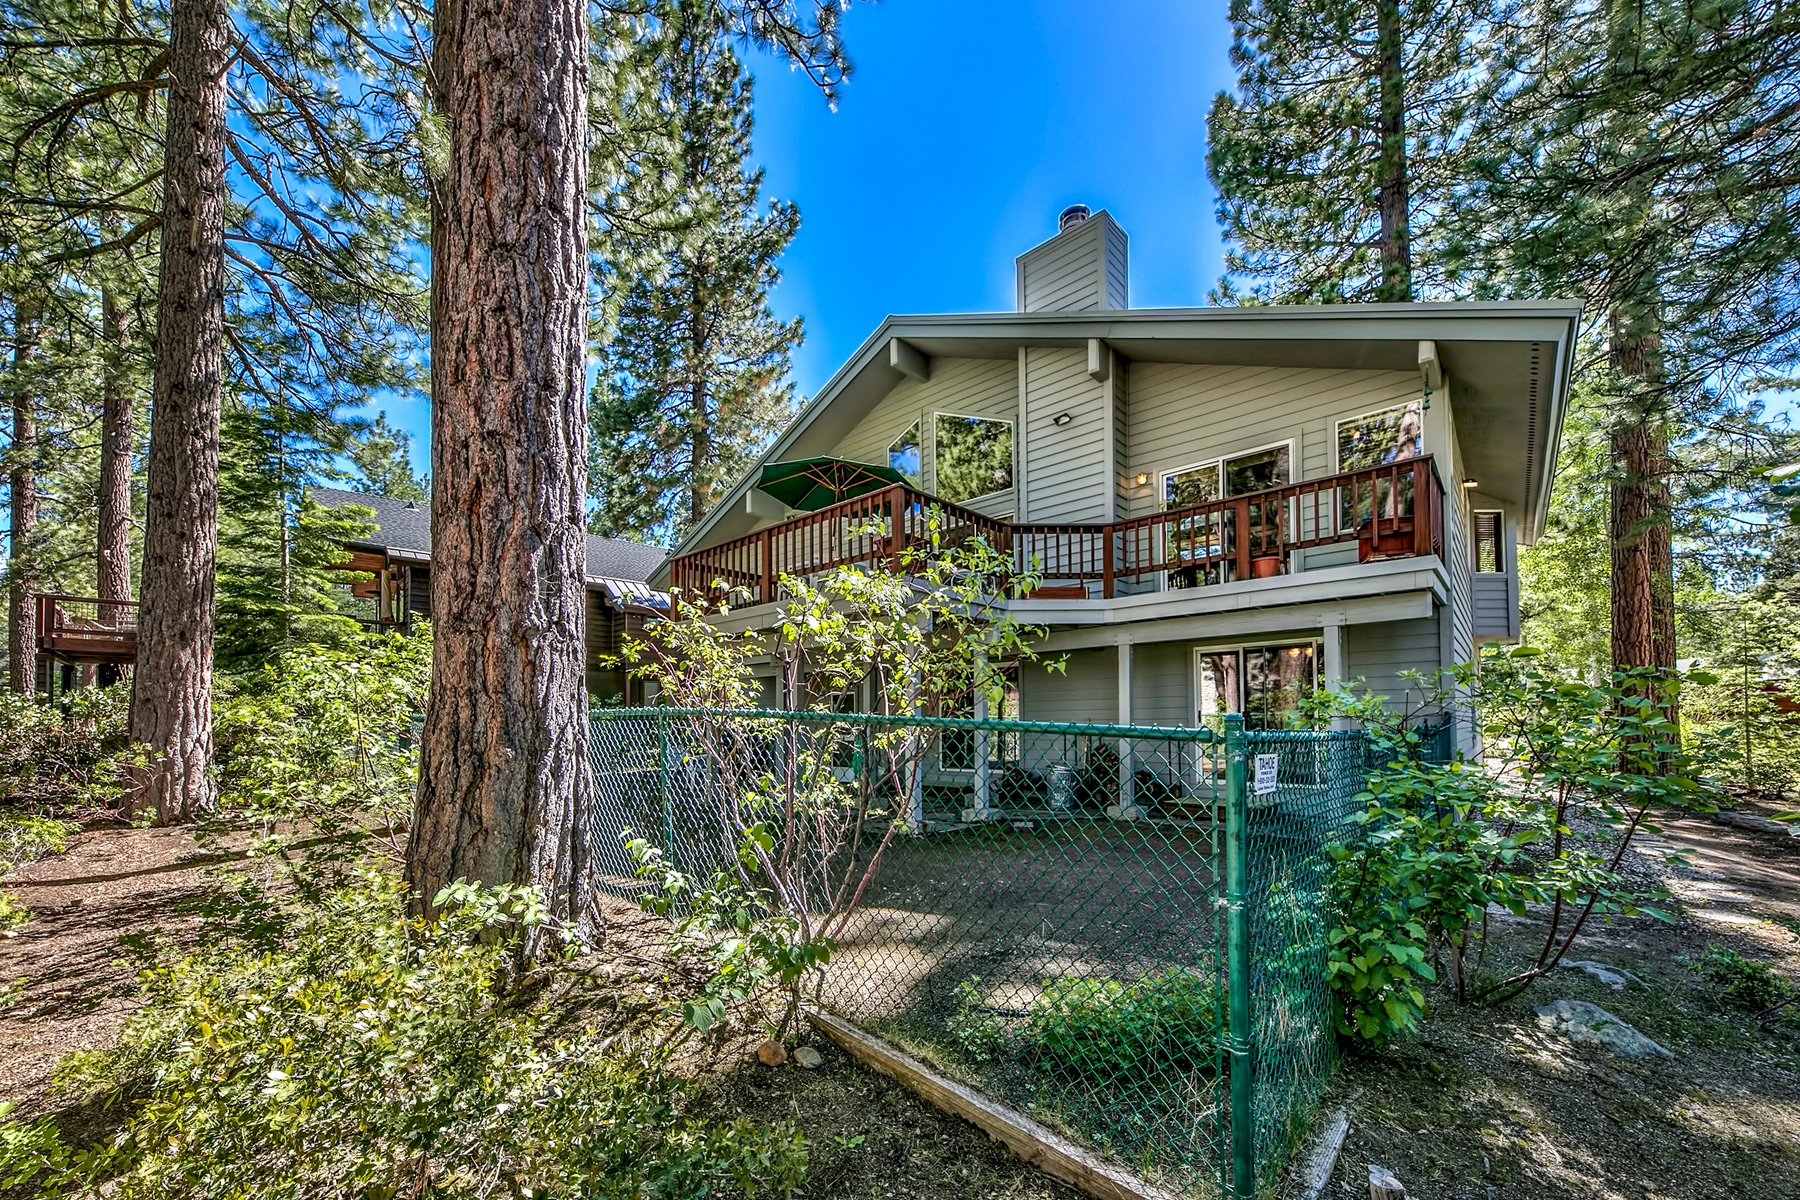 Additional photo for property listing at 166 Roundridge Rd. Tahoe City, Ca 96145 166 Roundridge Rd. Tahoe City, California 96145 United States